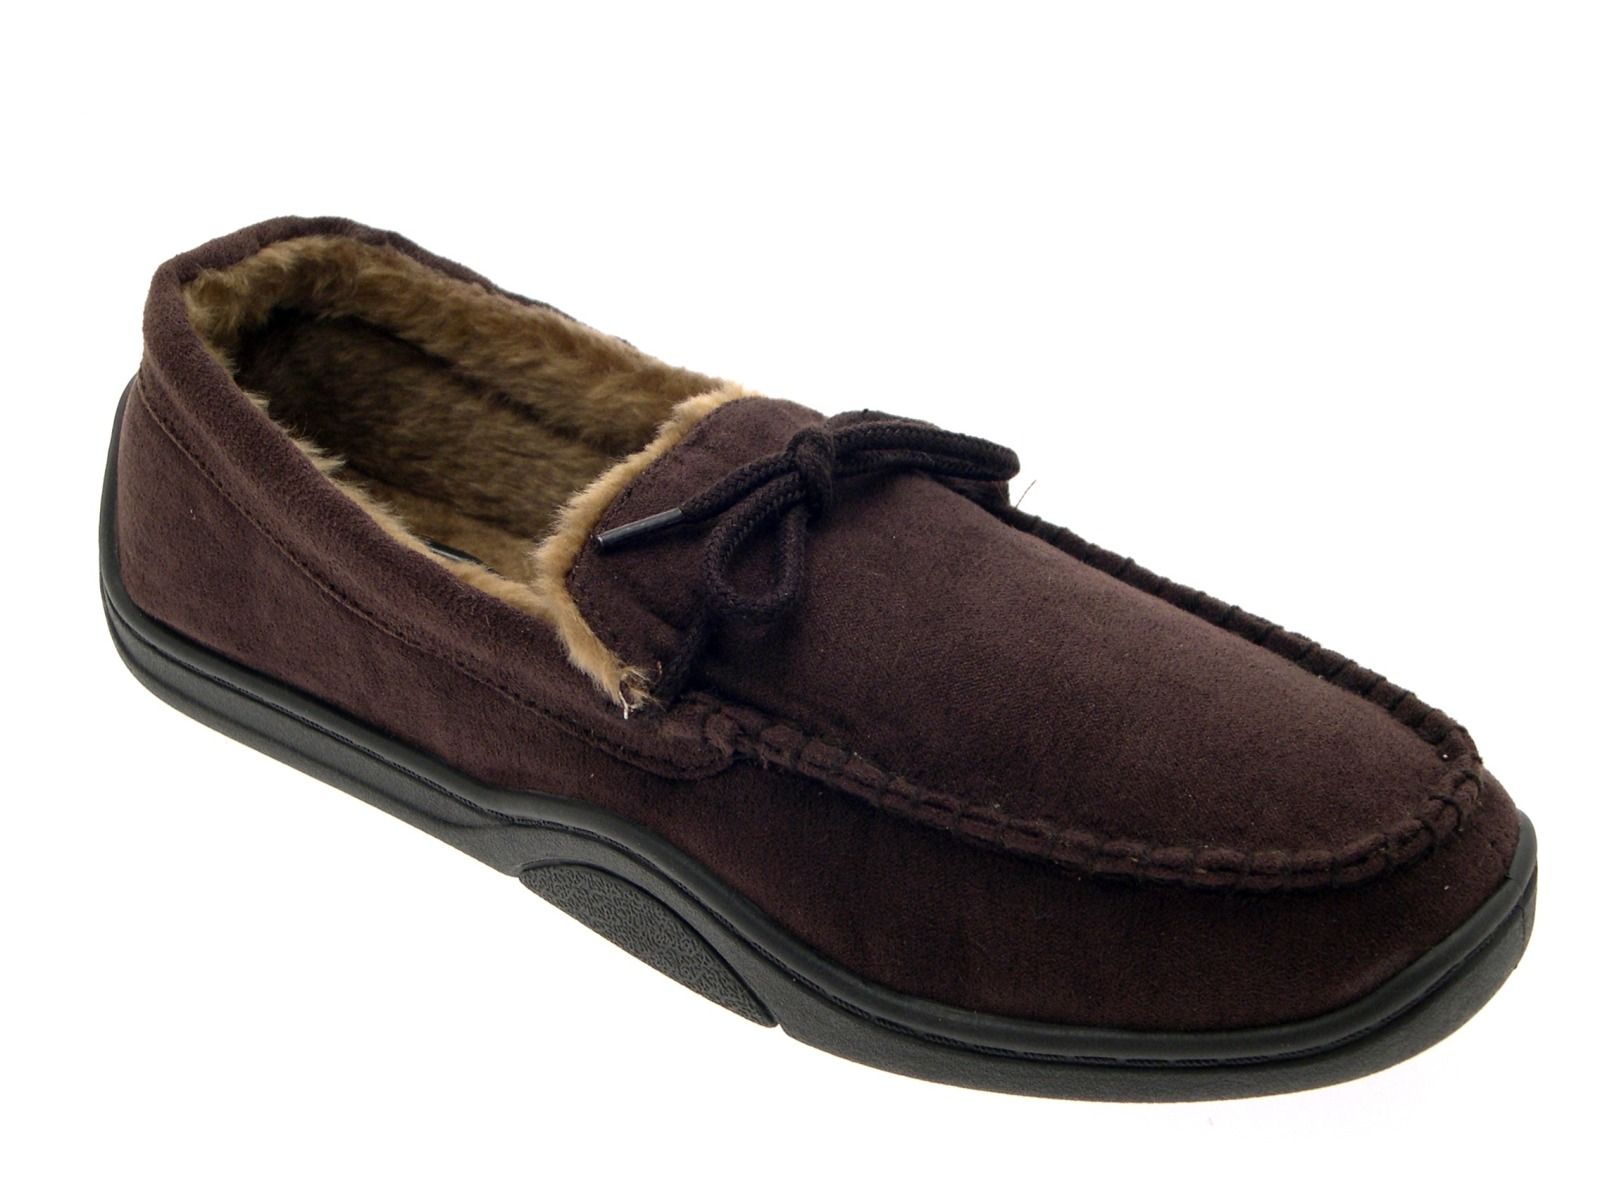 Peter Werth Mens Shoes